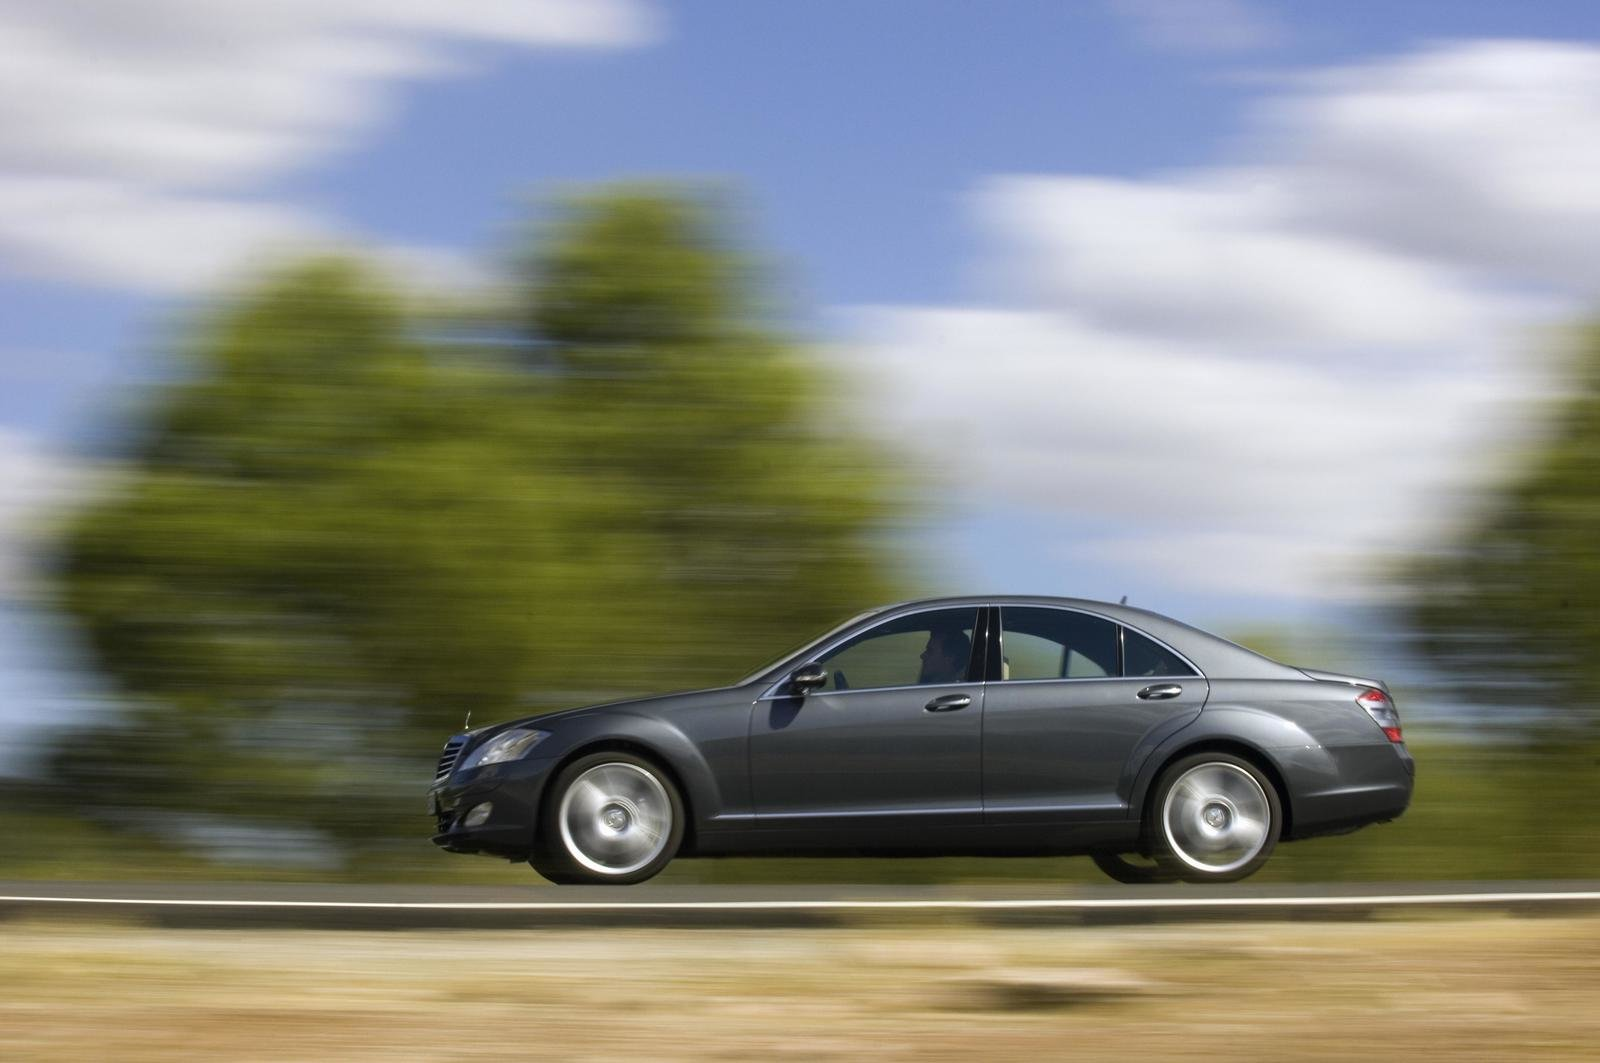 2007 mercedes s class 4matic picture 157300 car review for Mercedes benz s500 2007